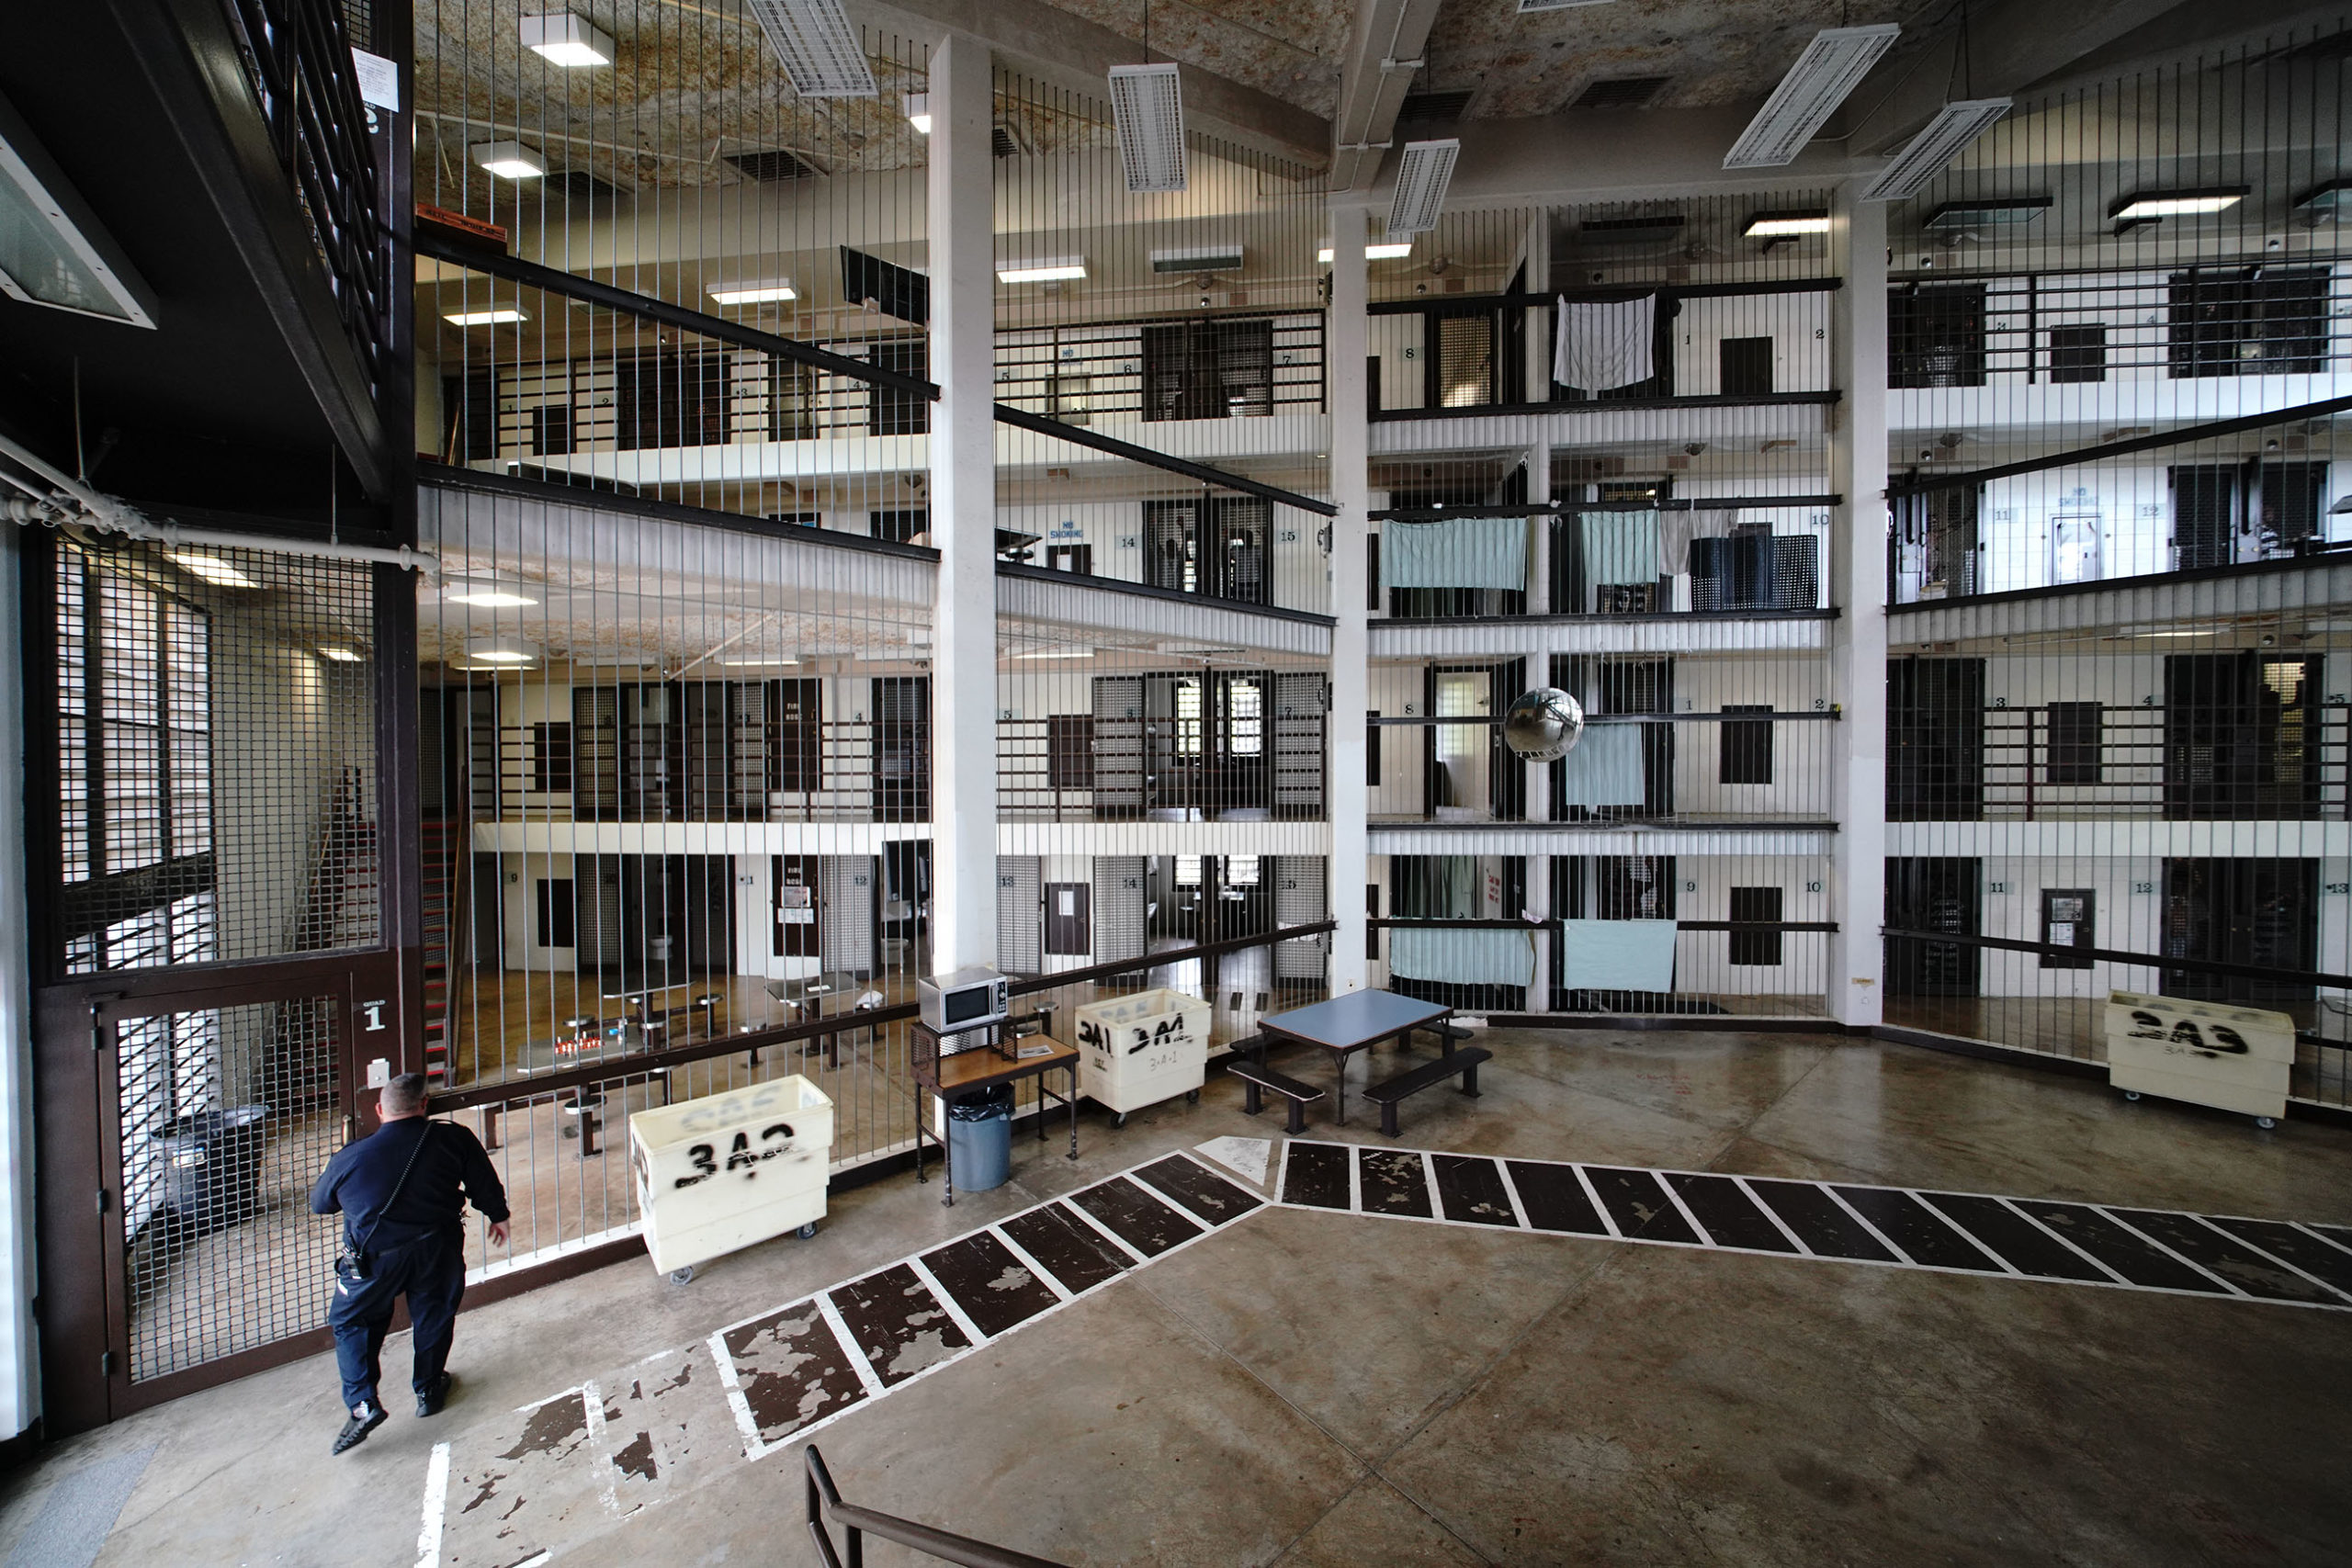 <p>Inmates at Halawa are allowed out of their cells once a shift, unless otherwise restricted, Mock says. There are three shifts in a day. Corrections officers conduct six different standing head counts a day, as well as a walk-through in the middle of the night.</p>